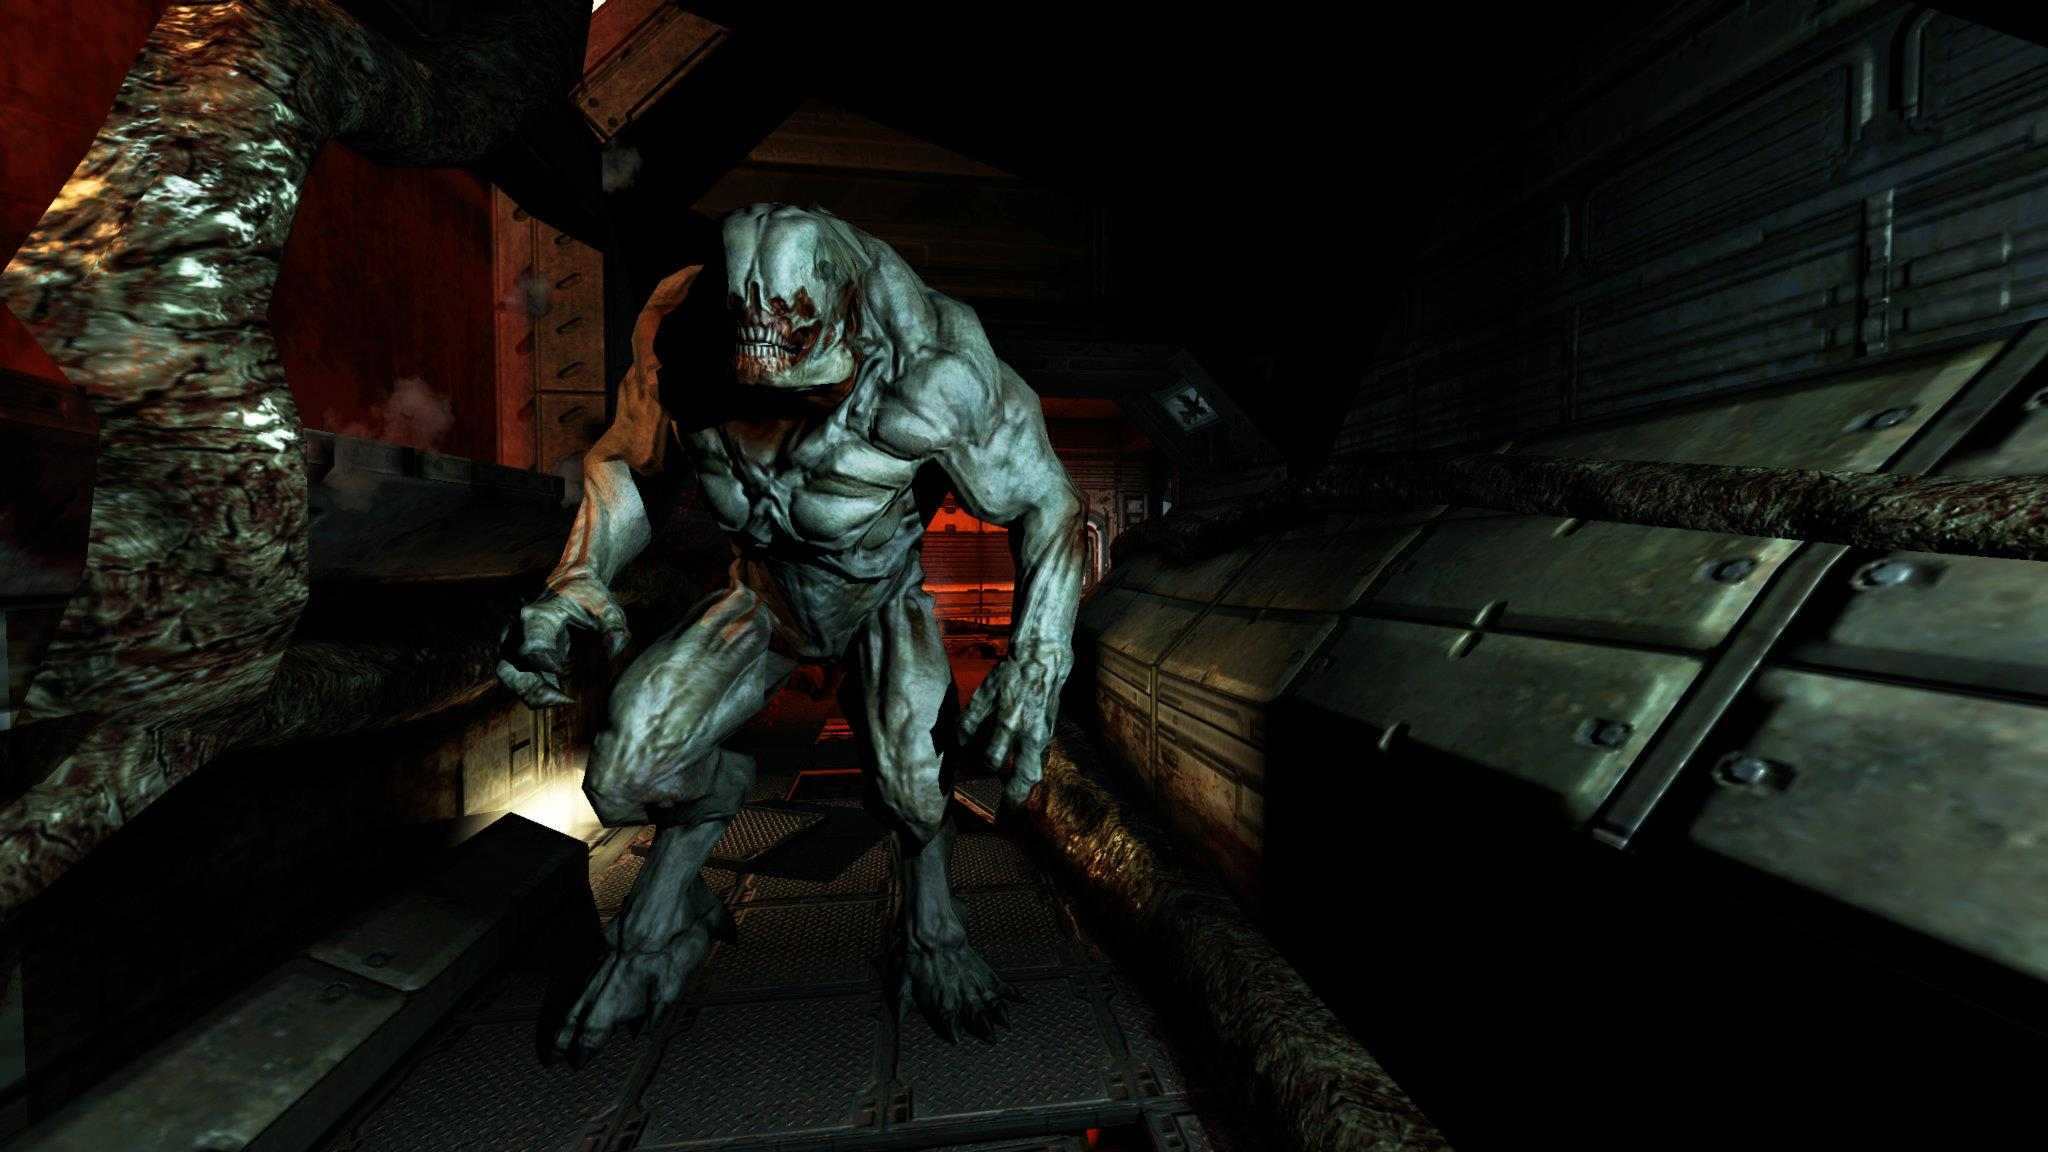 Doom 3 BFG Edition release date & pricing announced